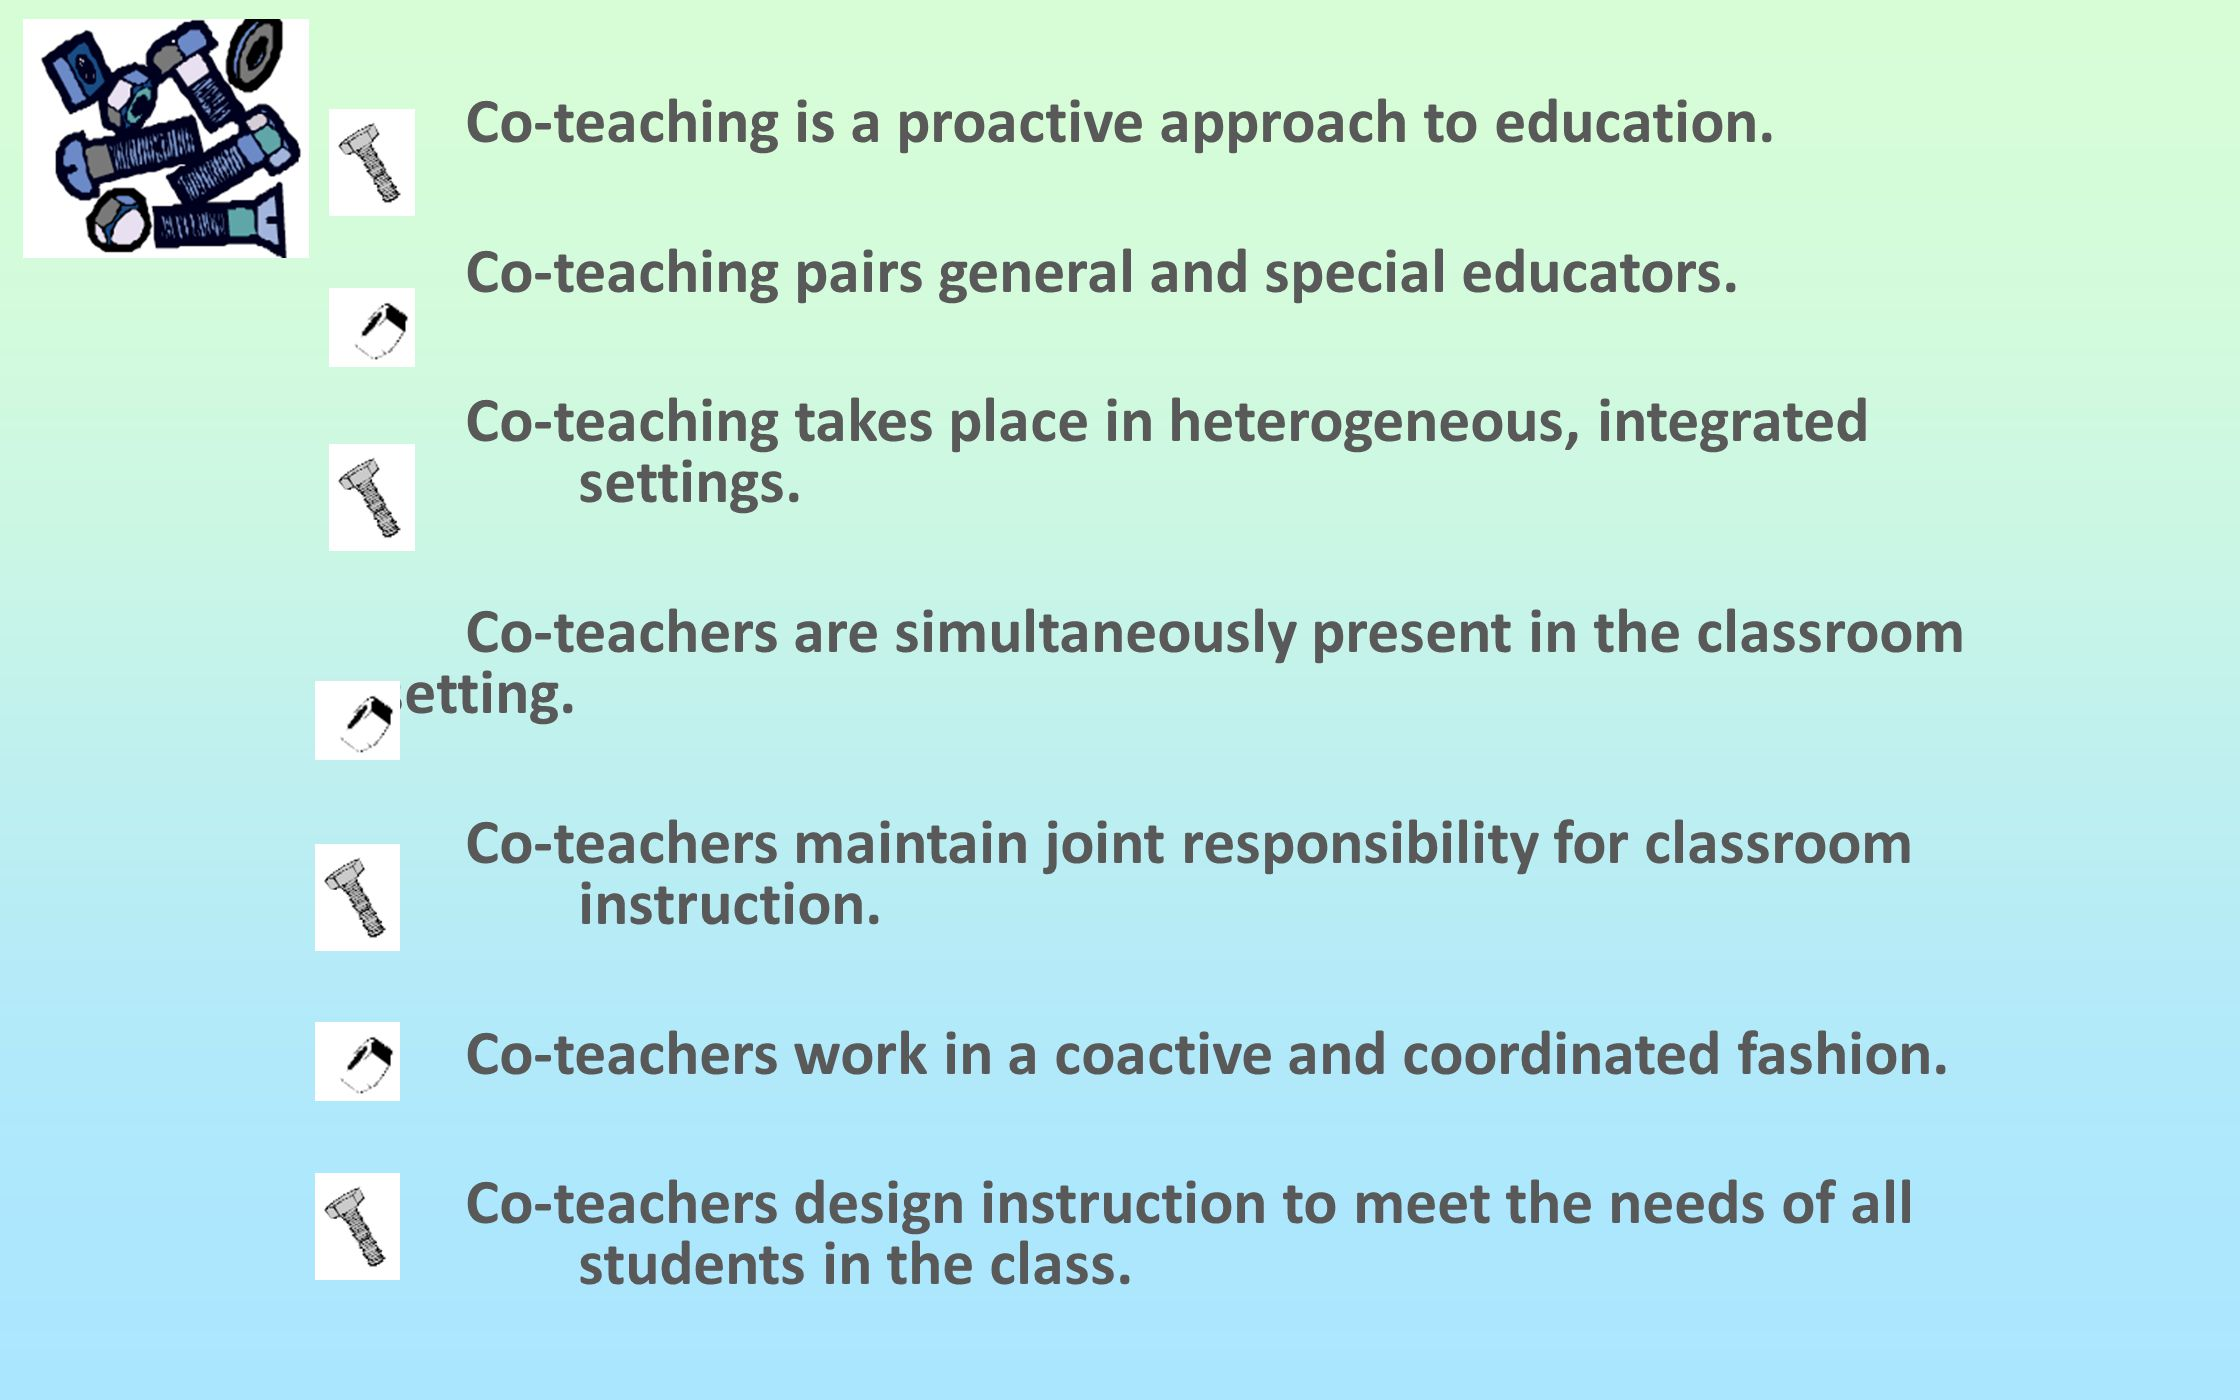 Co-teaching is a proactive approach to education